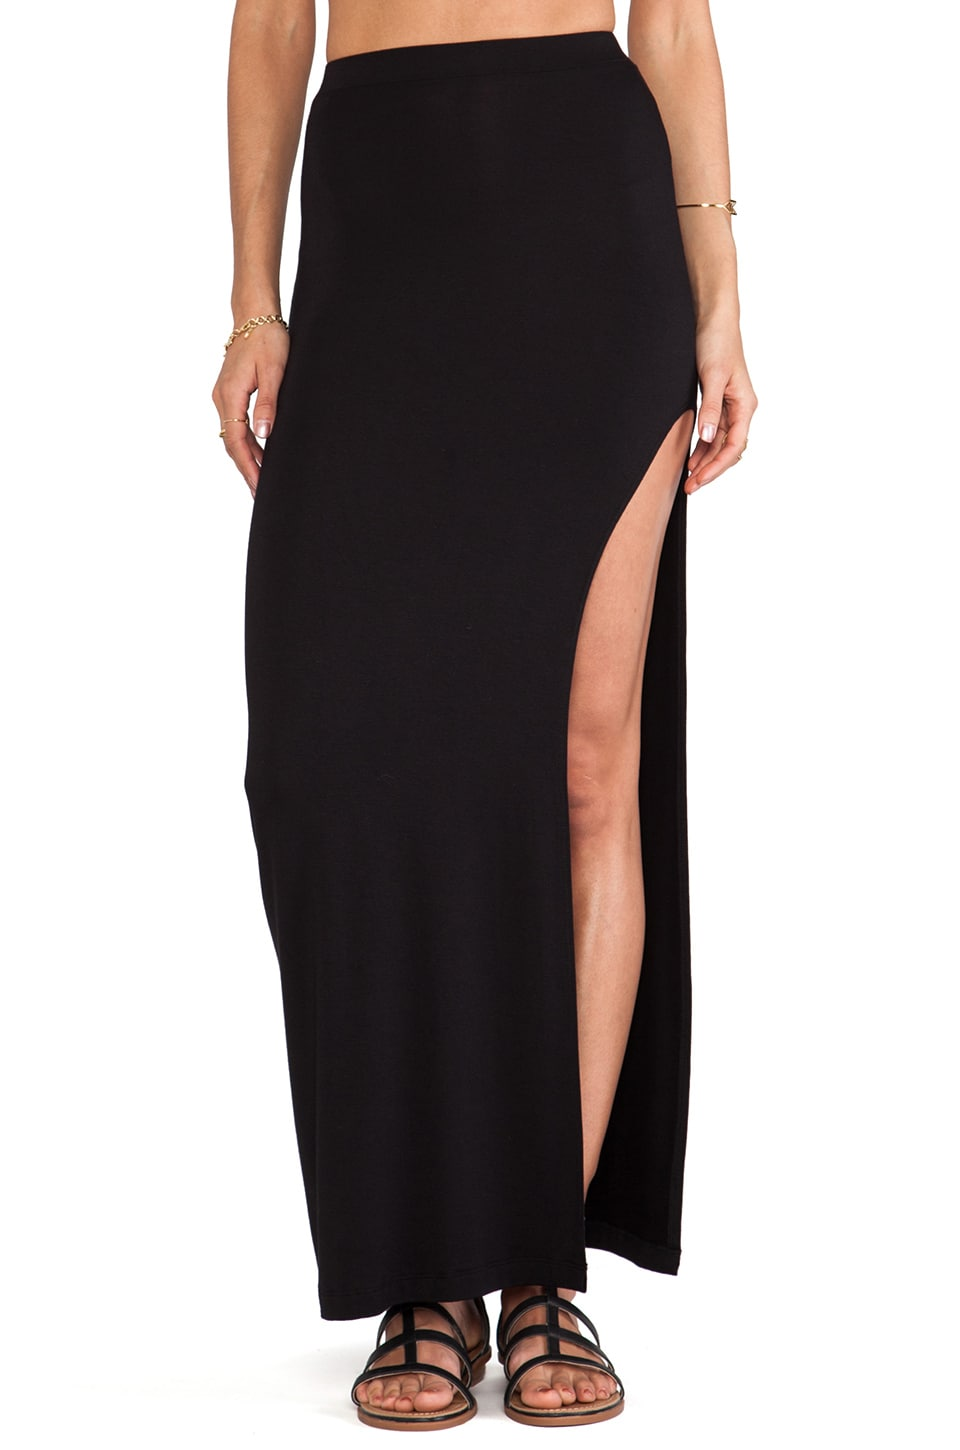 Stone Fox Swim Breeze Skirt in Onyx